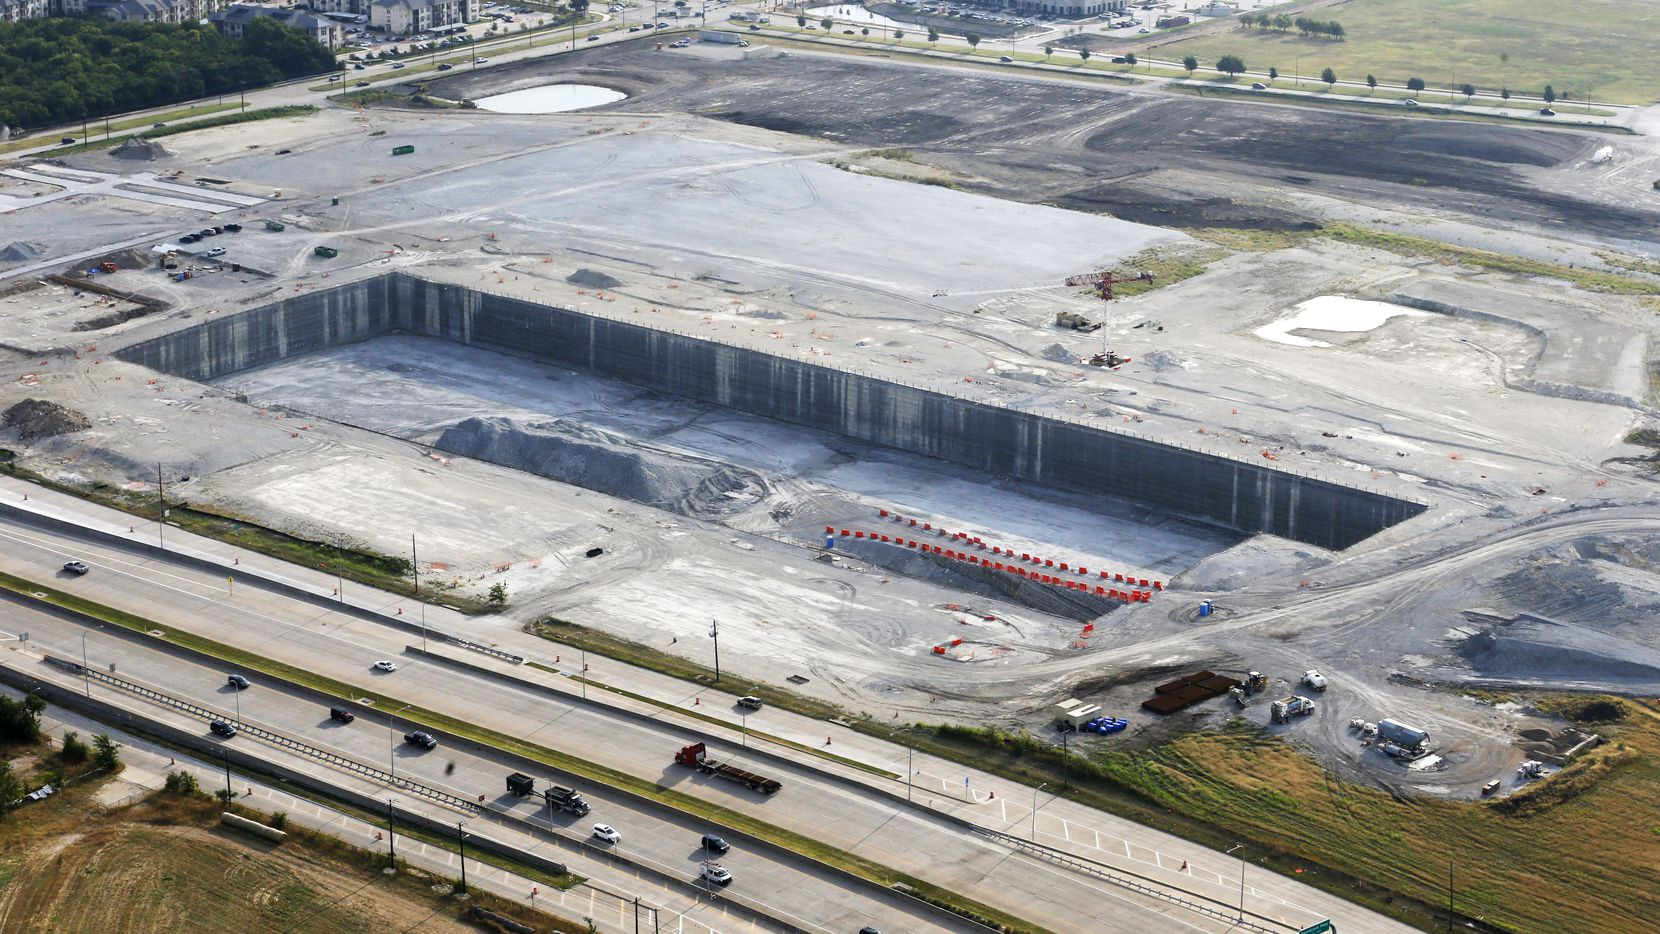 Construction stopped on the $2 billion Wade Park project in Frisco in 2017.